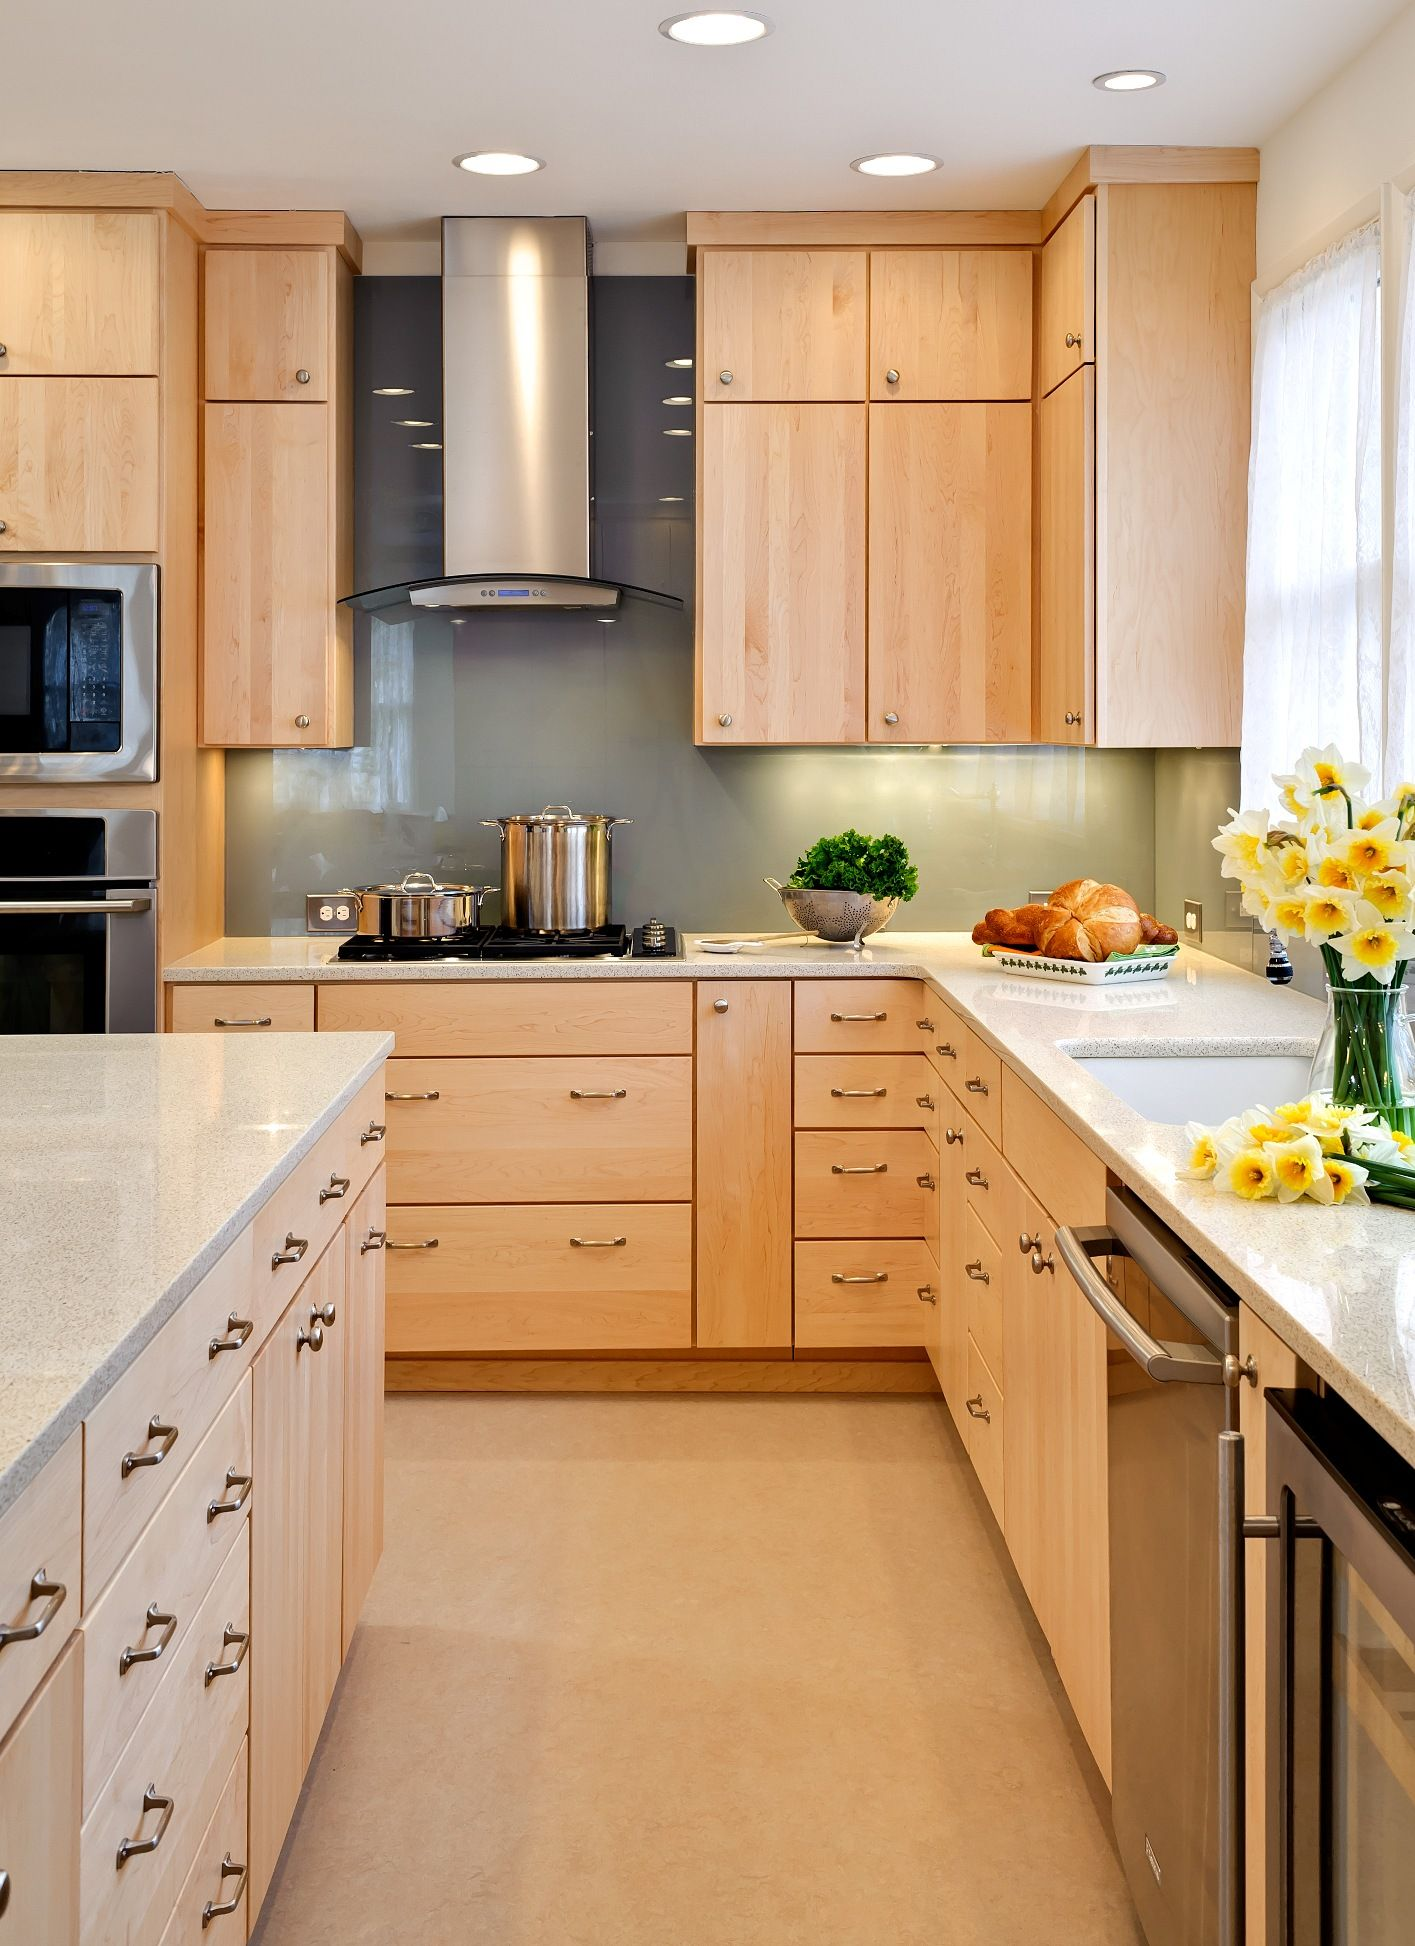 Too Modern But We Could Do Maple Cabinets As Another Option And This Is A Plain